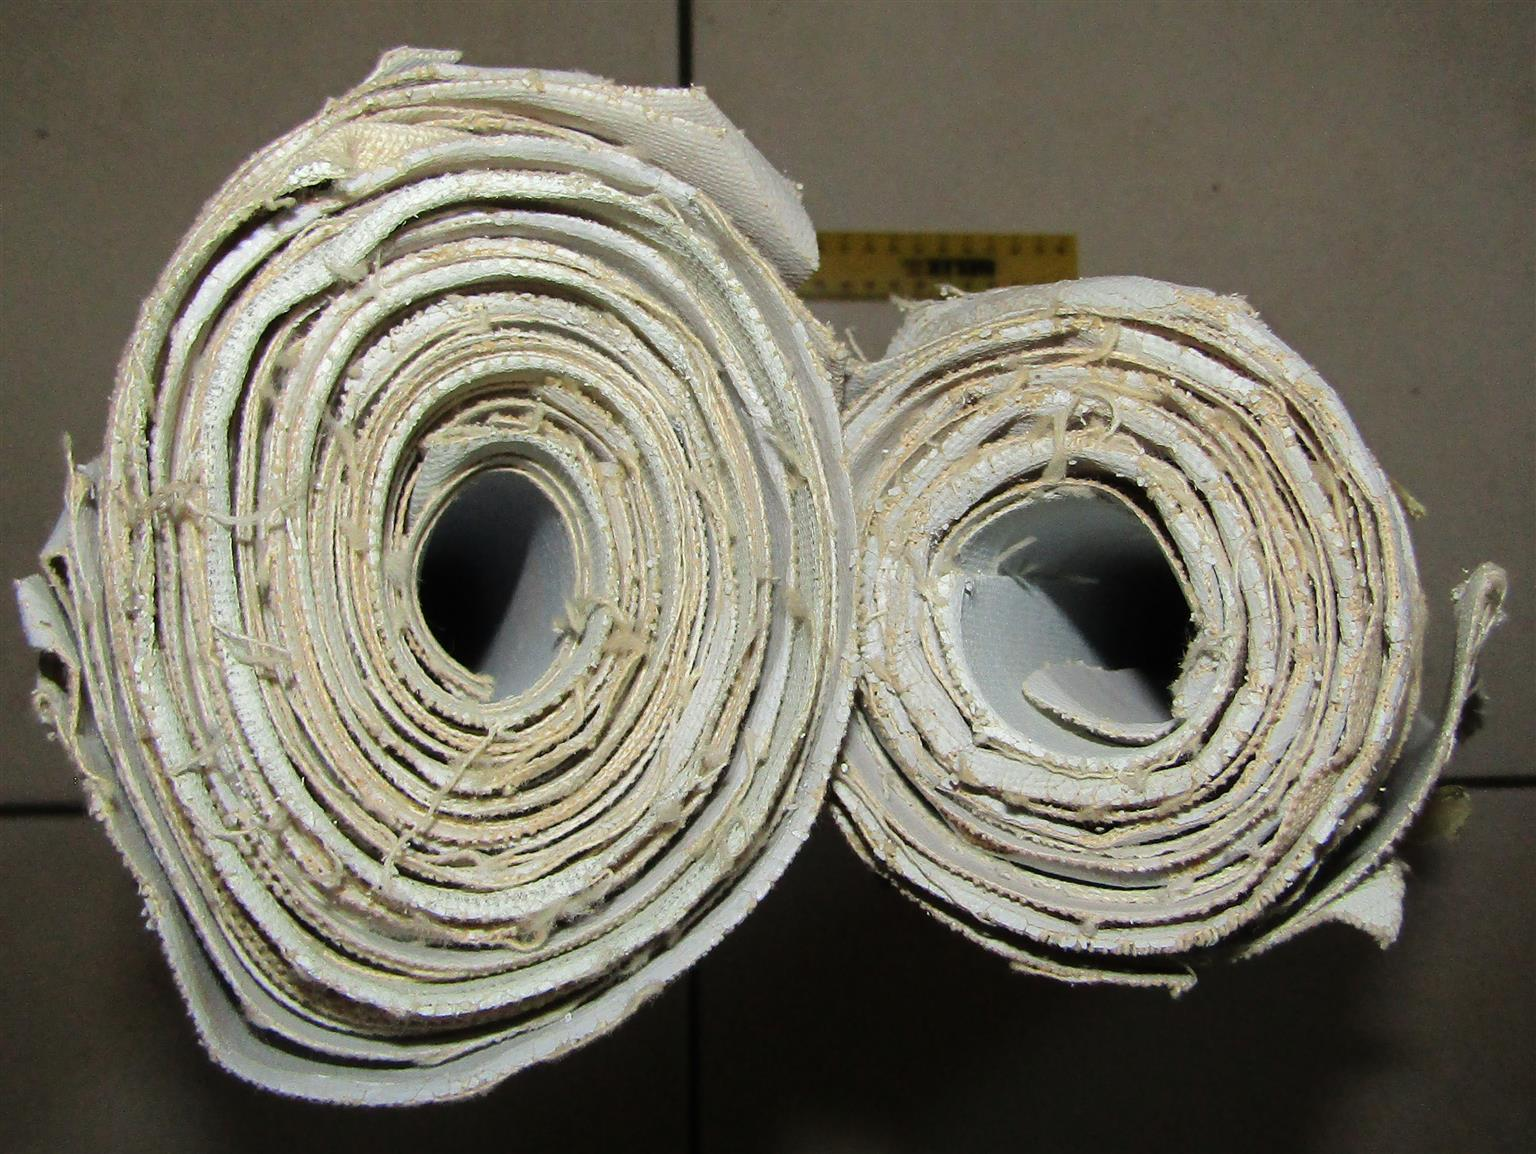 Painters Canvas - approximately 530mm wide; various lengths; 2.65kg